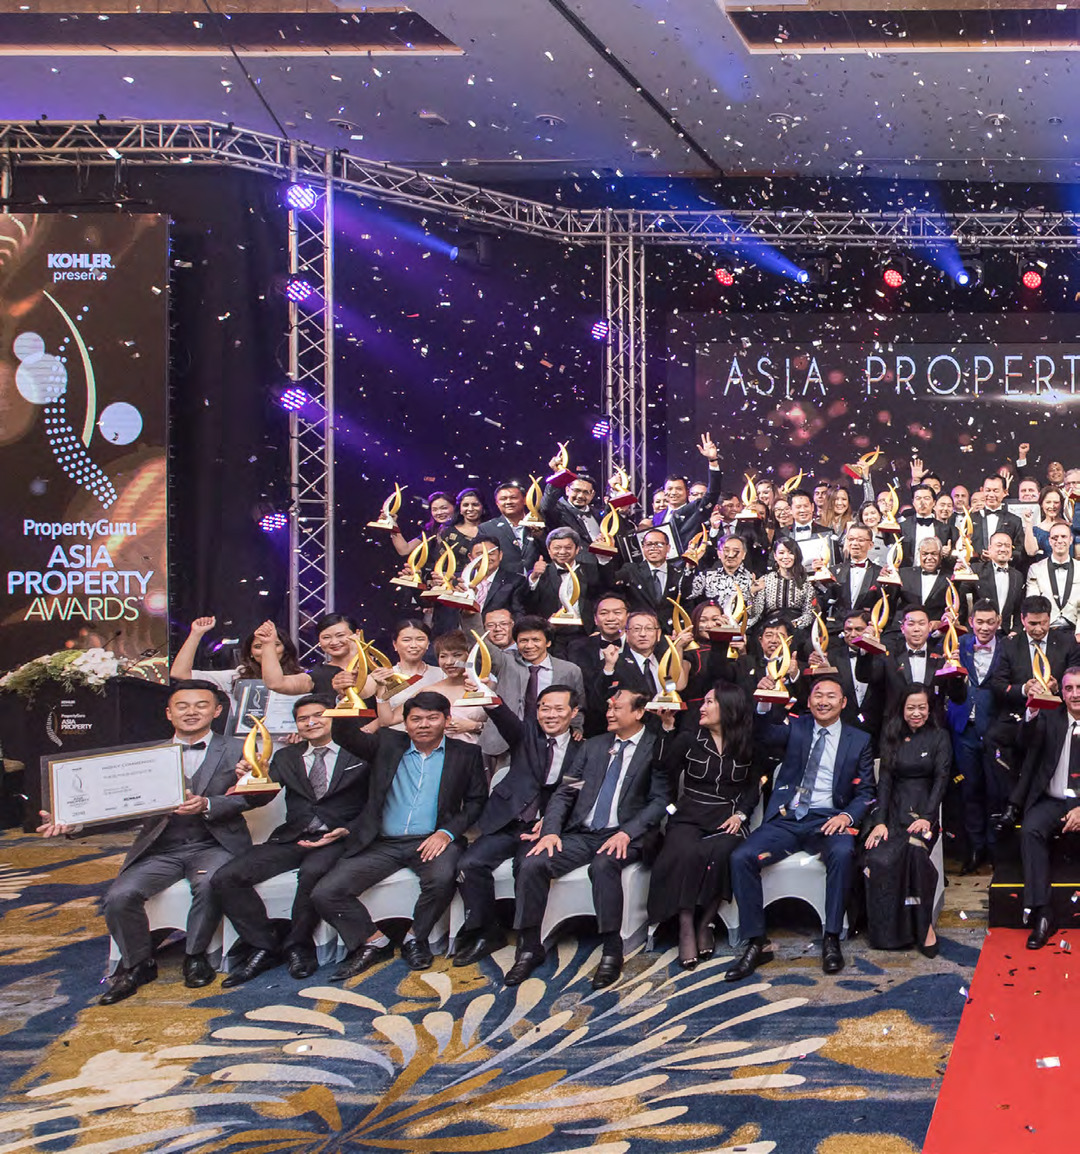 Page 68 of Thailand Hosts The Property Guru Asia Property Awards Grand Final Gala For The First Time